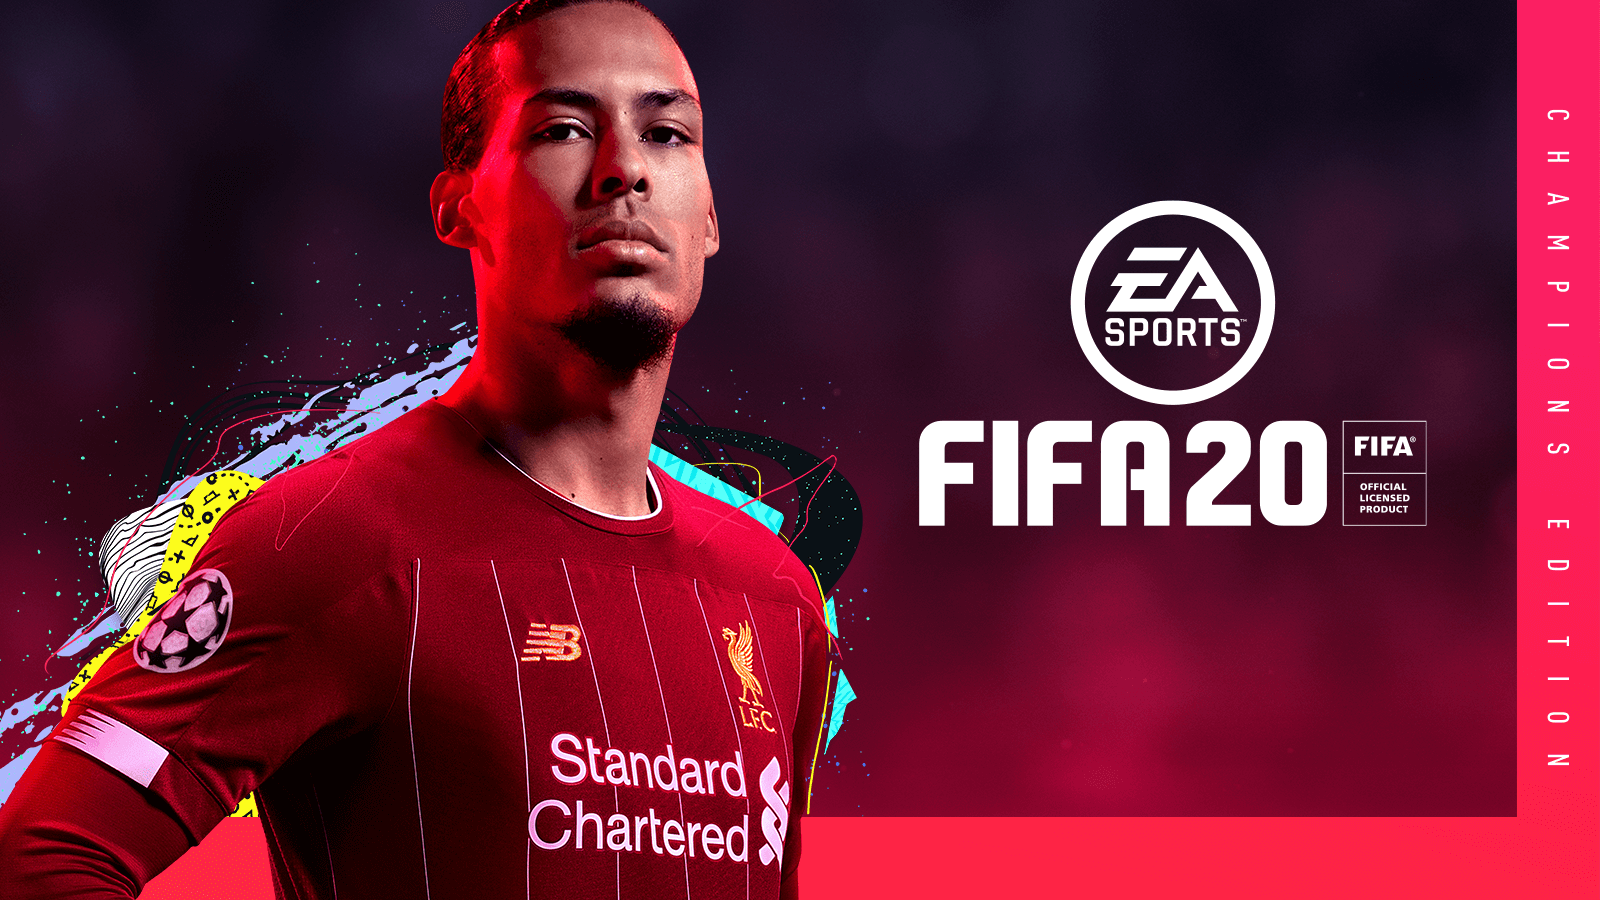 FIFA 20 Player Rankings: Who are the best FIFA 20 Premier League players?